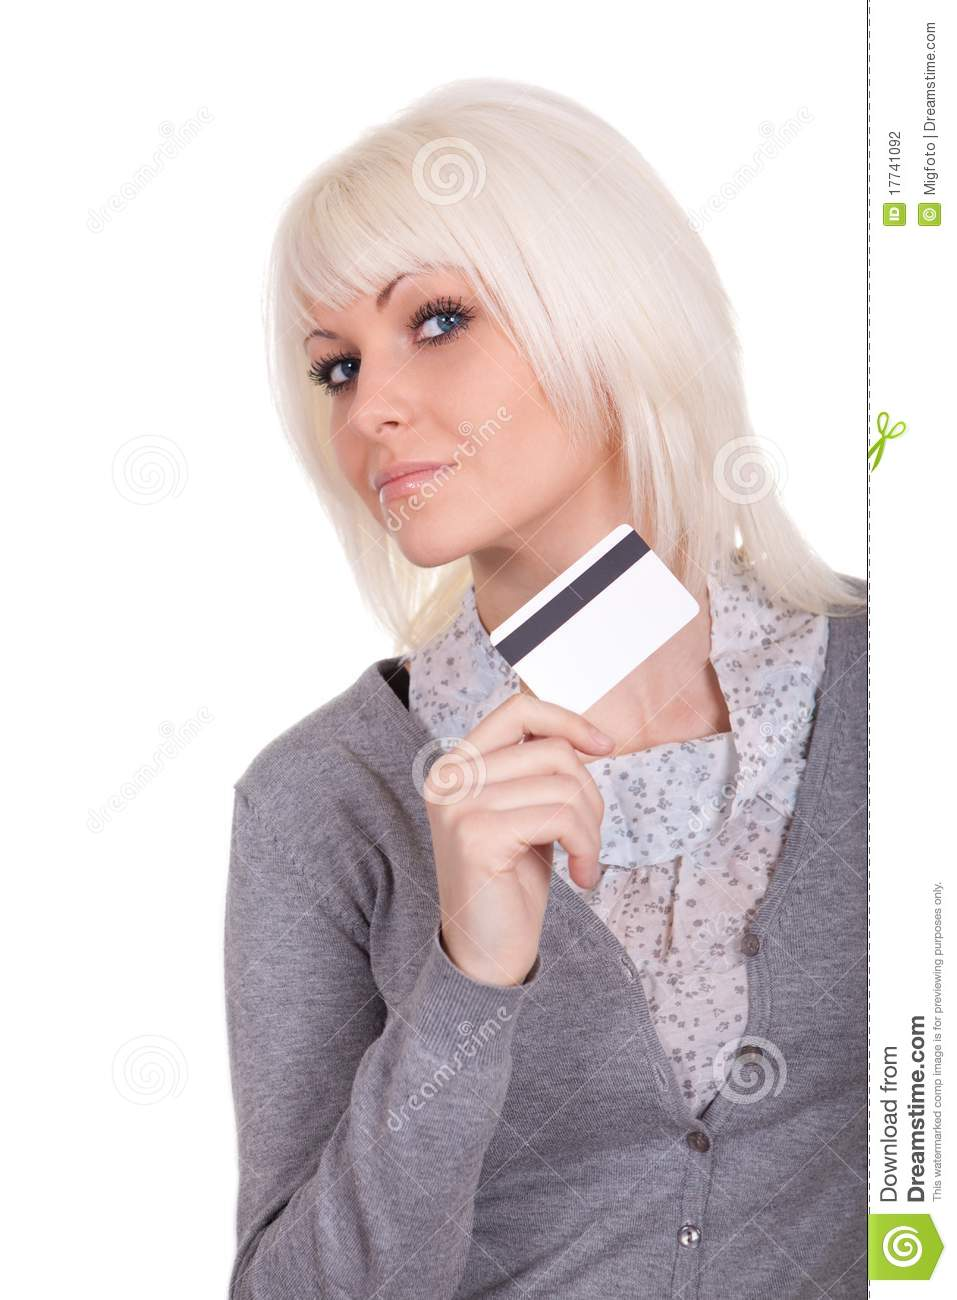 The girl with a bank card